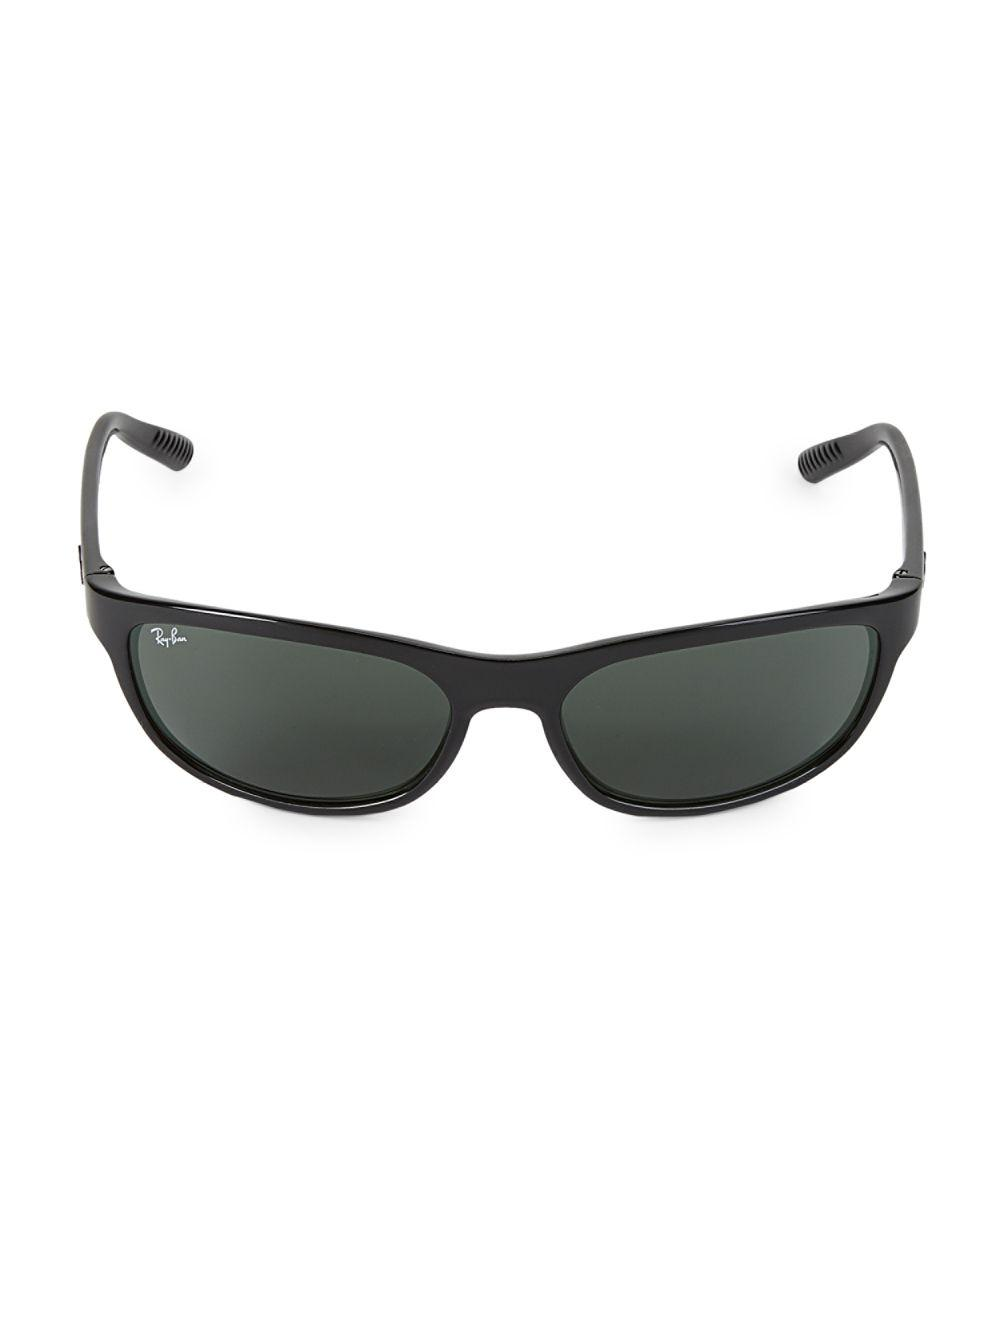 af91b930d32 Ray-Ban 62mm Shield Sunglasses in Black - Lyst